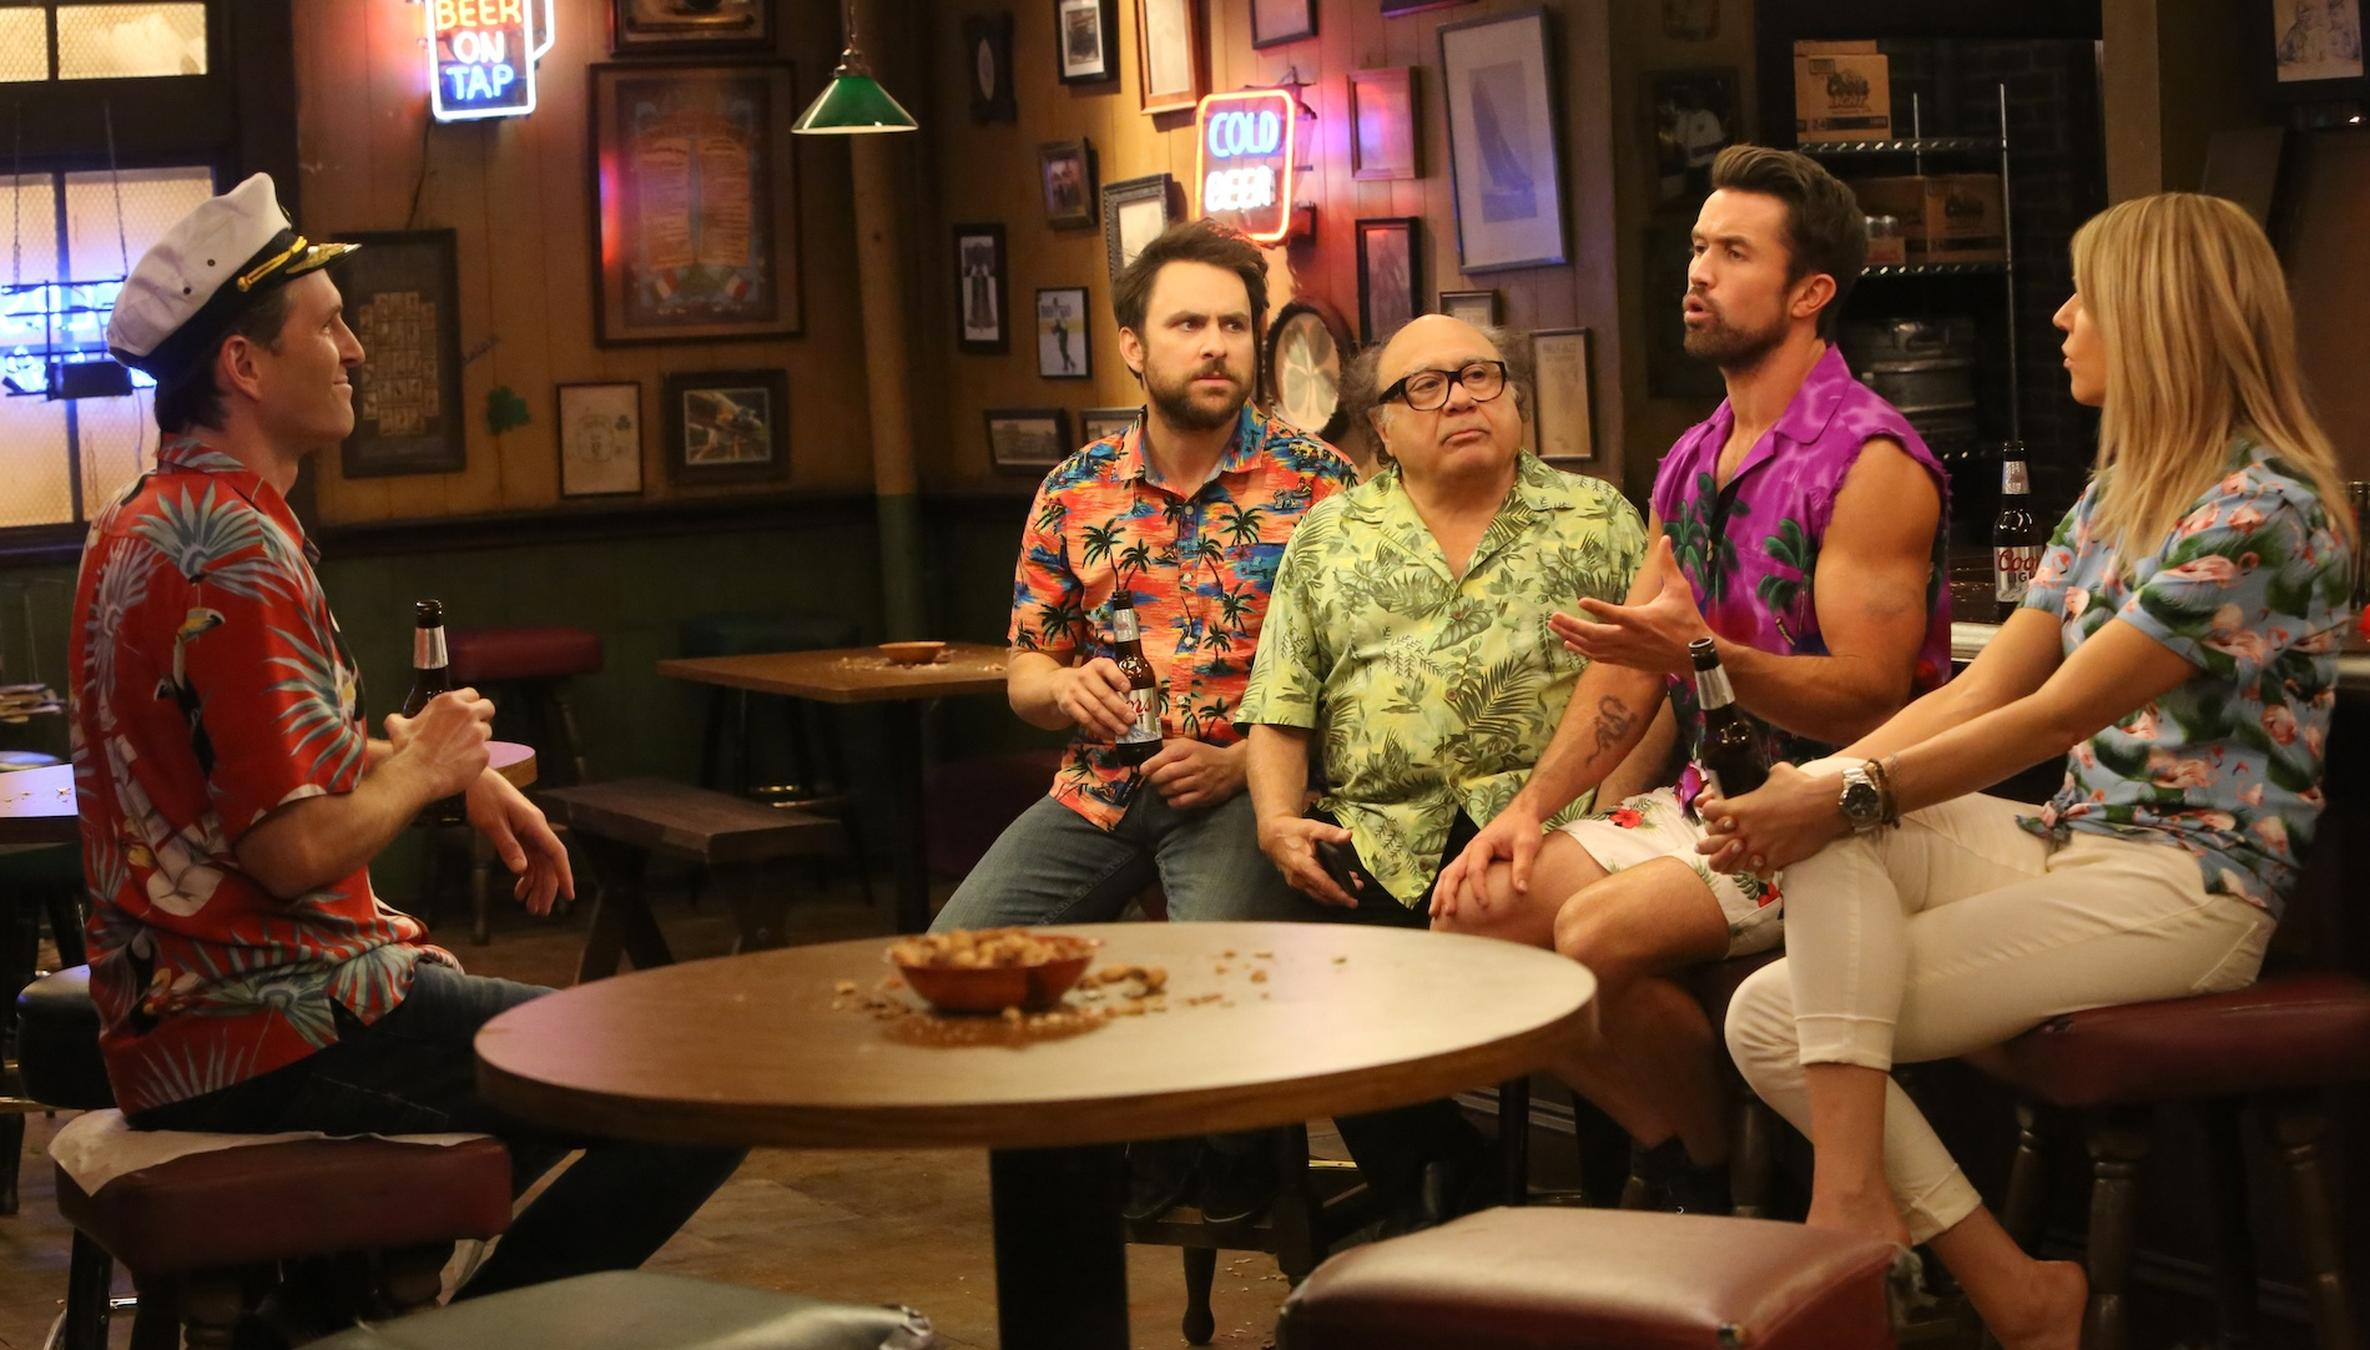 Always Sunny In Philadelphia Clips l.a. what's filming: season 14 of 'it's always sunny in